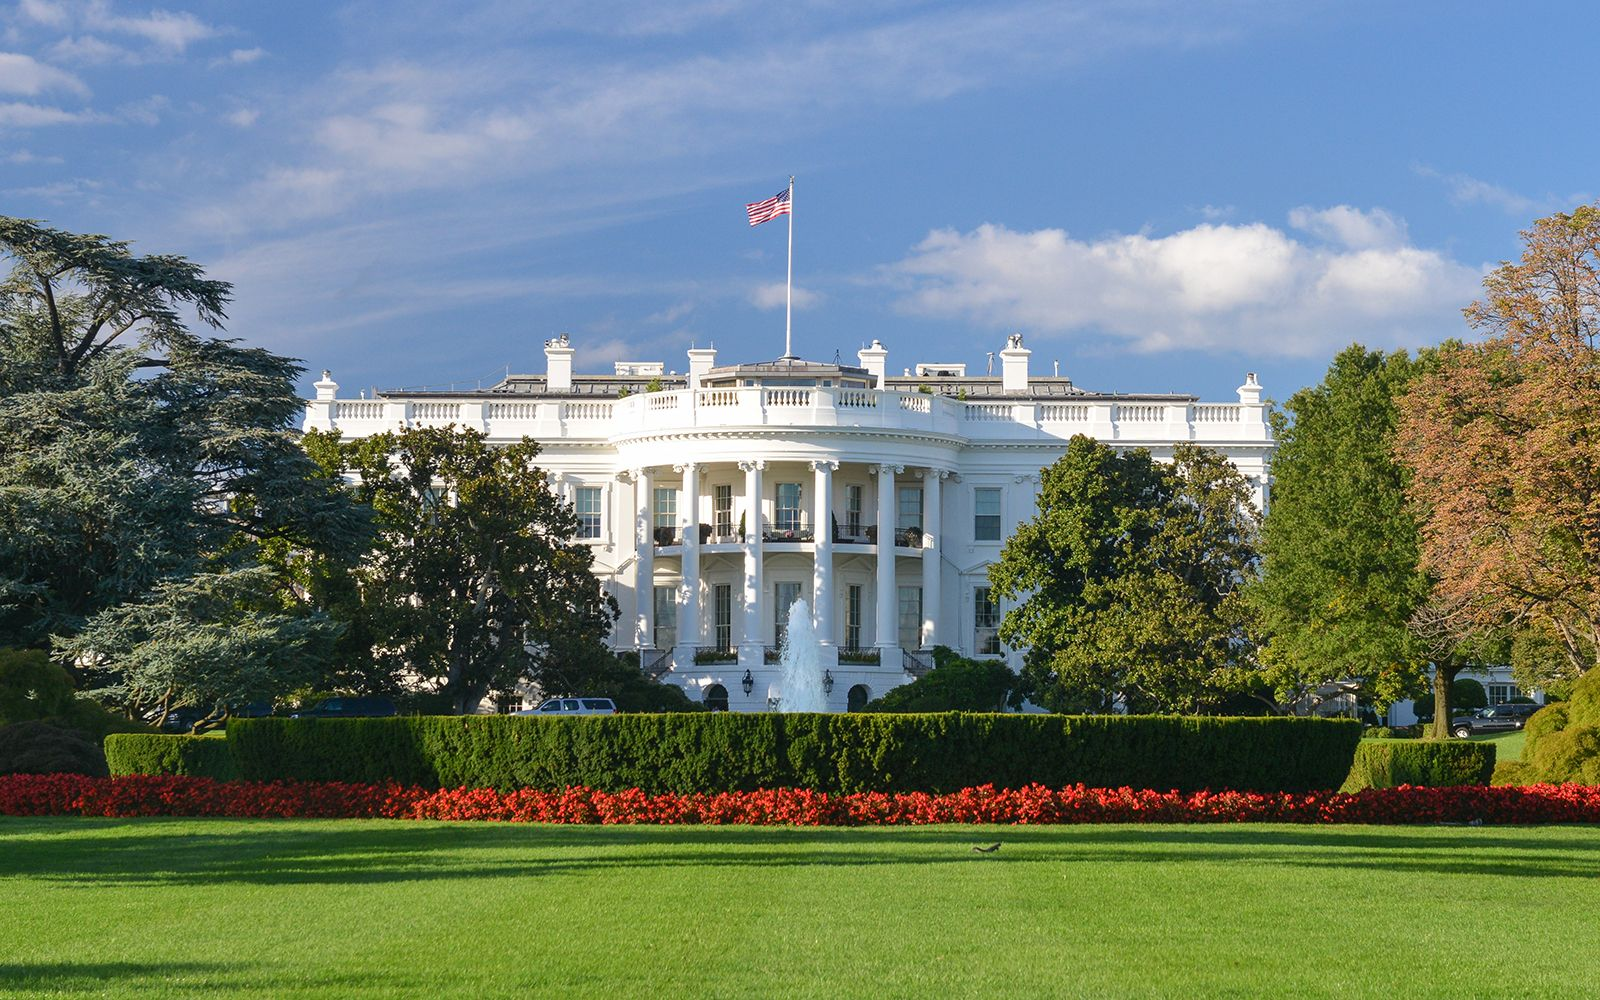 Oval Reach: White House Plan To Bolster Building Supply Chain